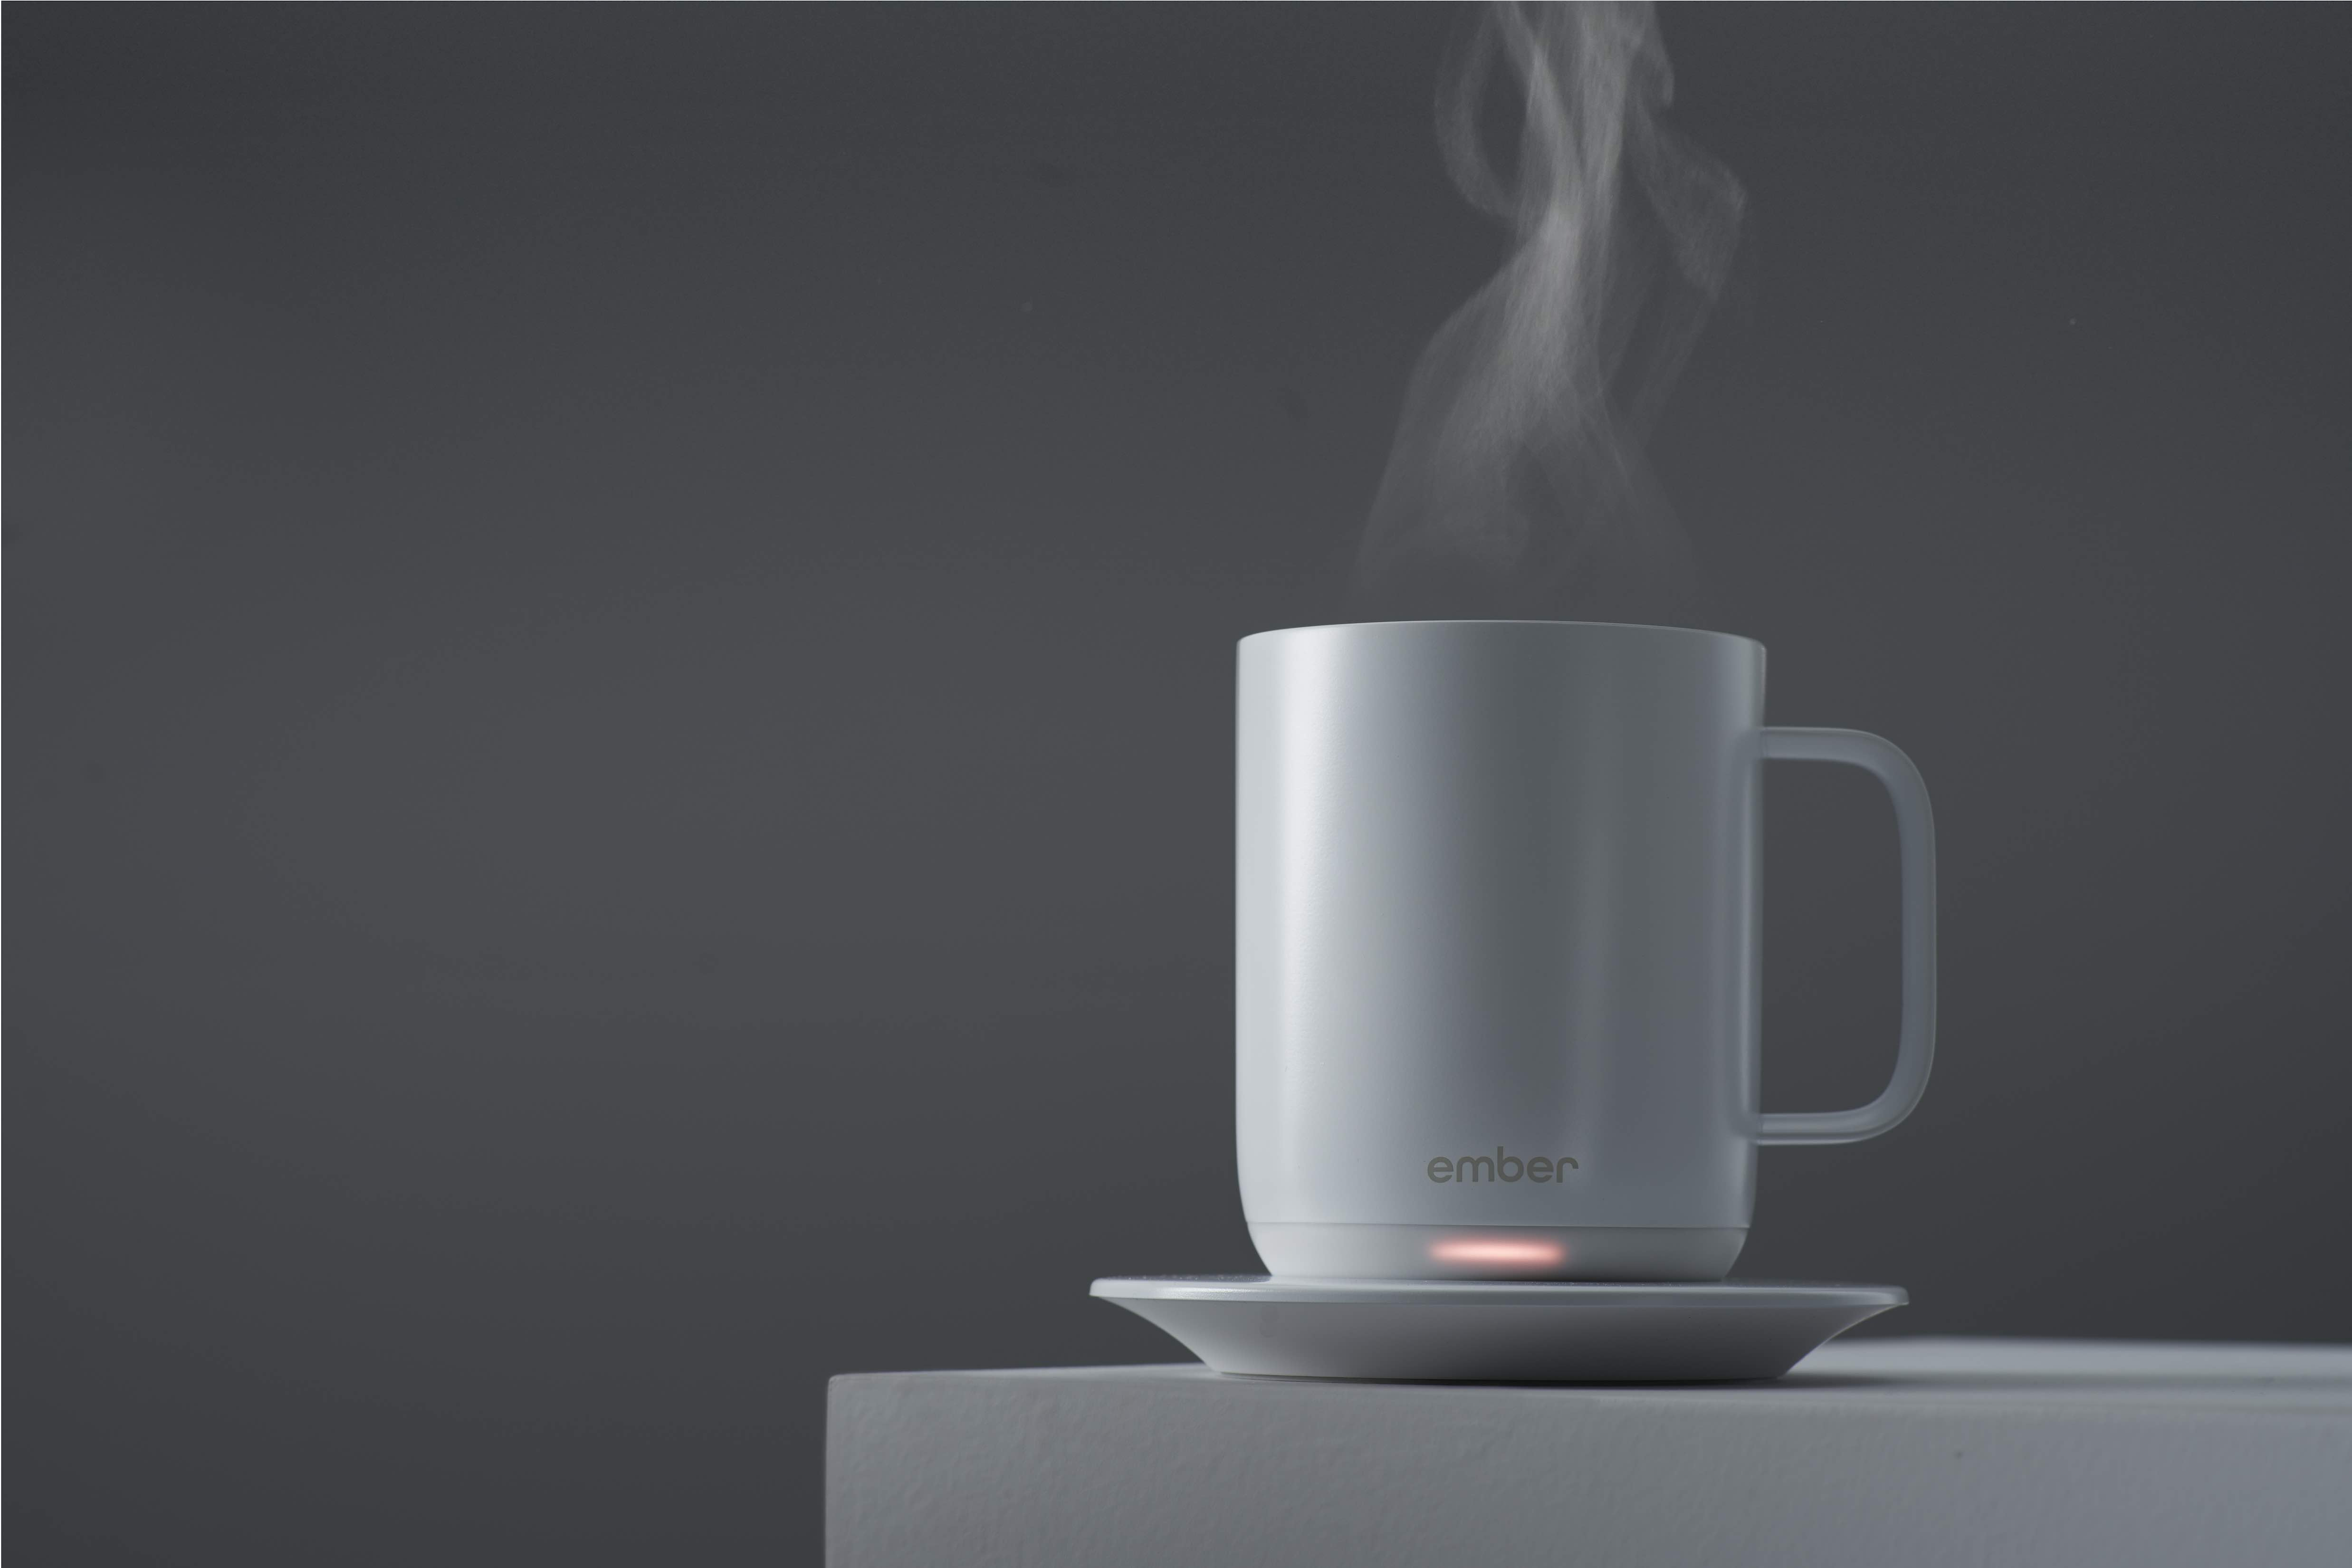 Elegant Ember Ceramic Mug Keeps Your Coffee Hot Through